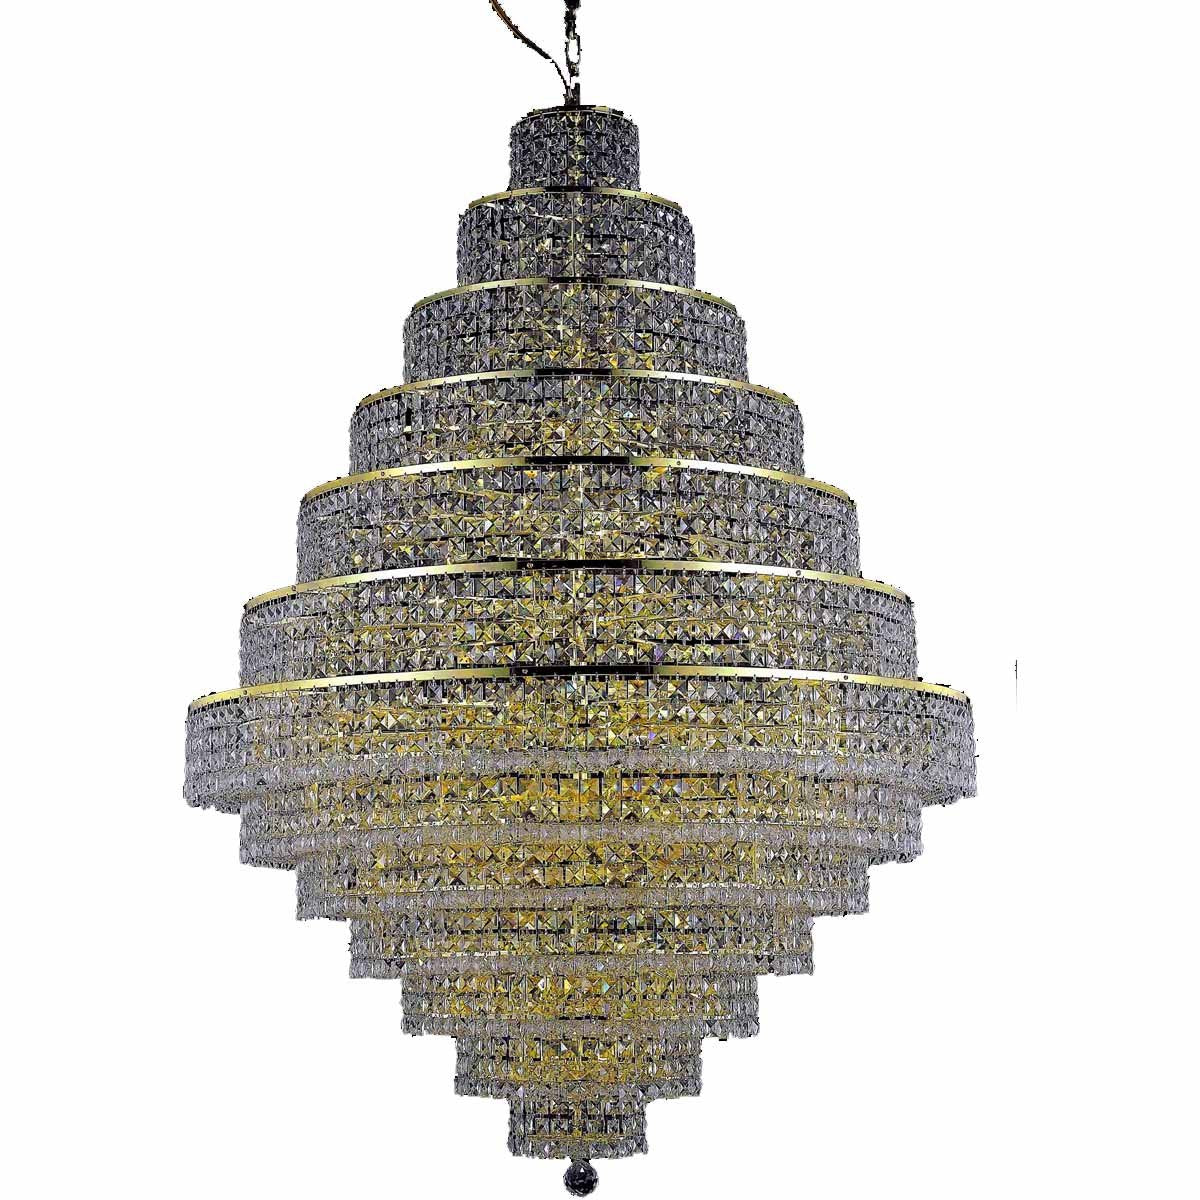 Maxime 42 Crystal Foyer Pendant Chandelier With 38 Lights - Gold Finish And Clear / Royal Cut Crystal Chandelier